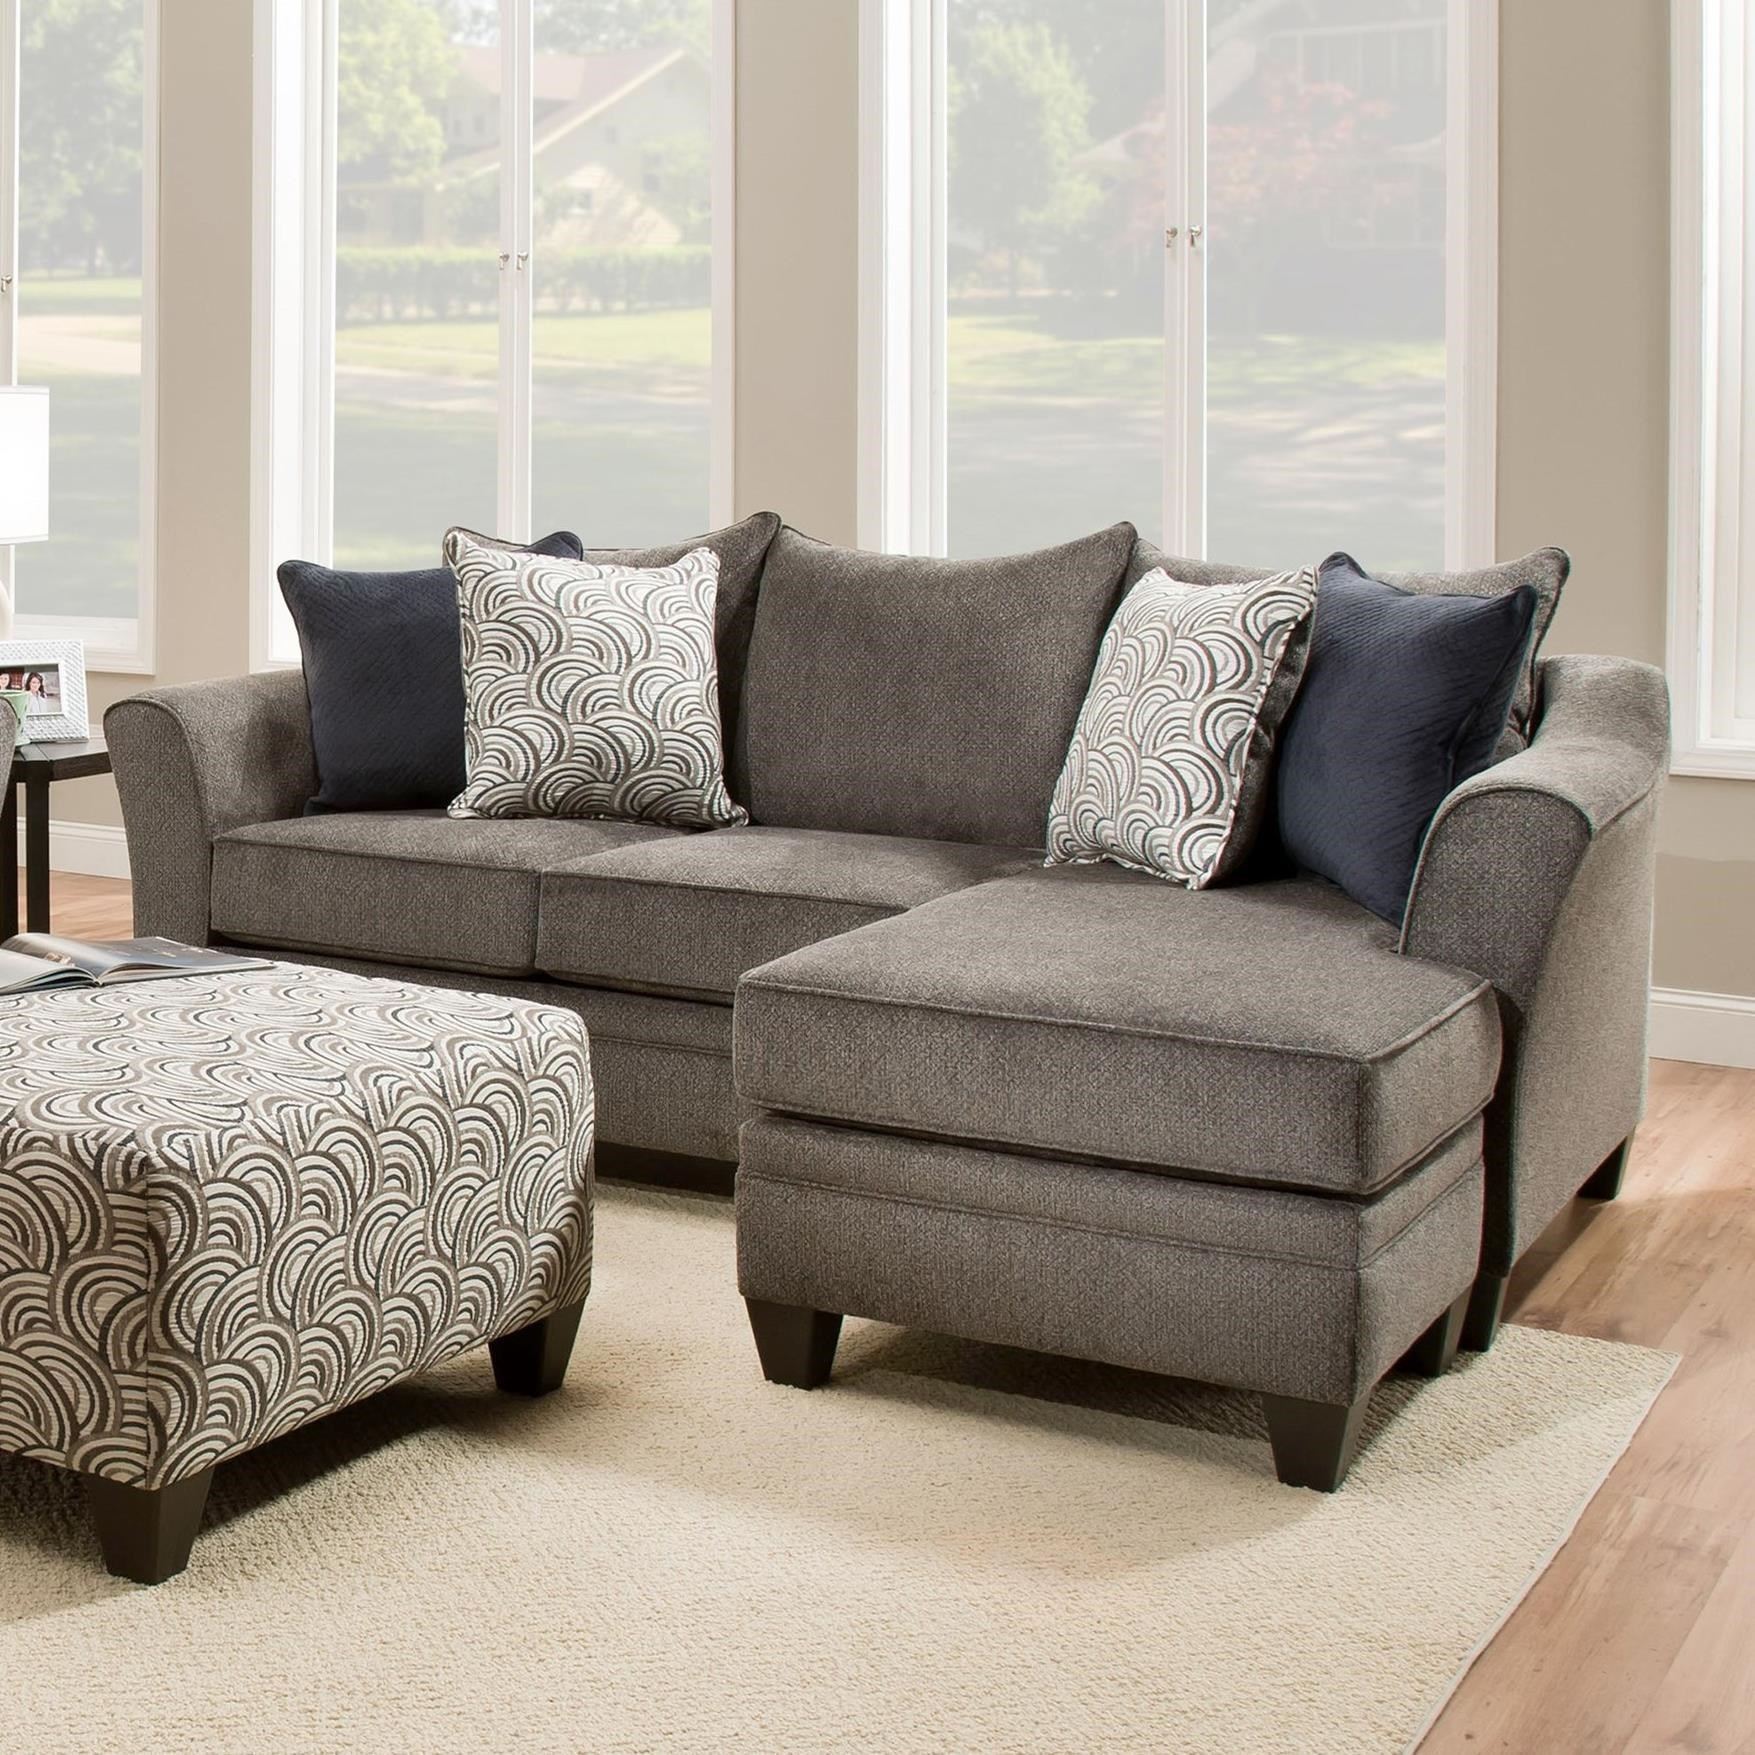 United Furniture Industries 6485 Transitional Sofa Chaise With Wood Legs